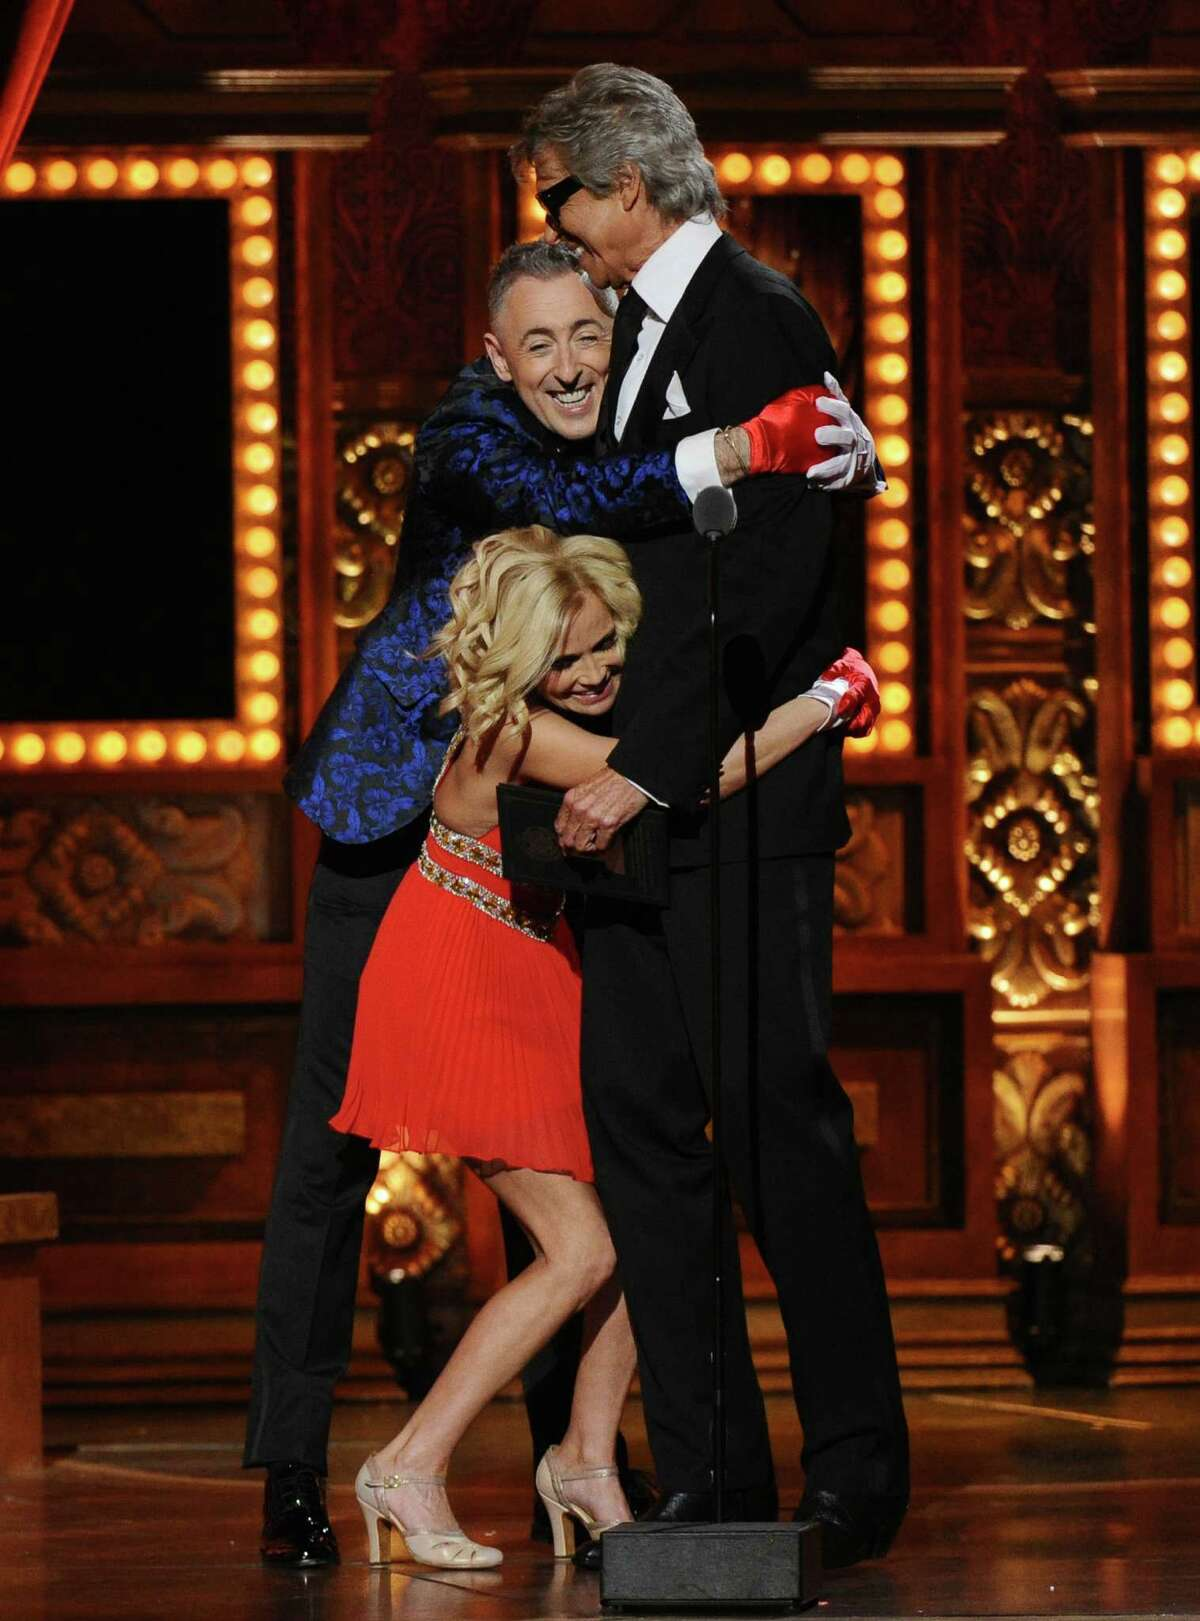 Alan Cumming, and Kristin Chenoweth embrace Tommy Tune, right, winner of the lifetime achievement award at the 69th annual Tony Awards at Radio City Music Hall on Sunday, June 7, 2015, in New York. (Photo by Charles Sykes/Invision/AP)